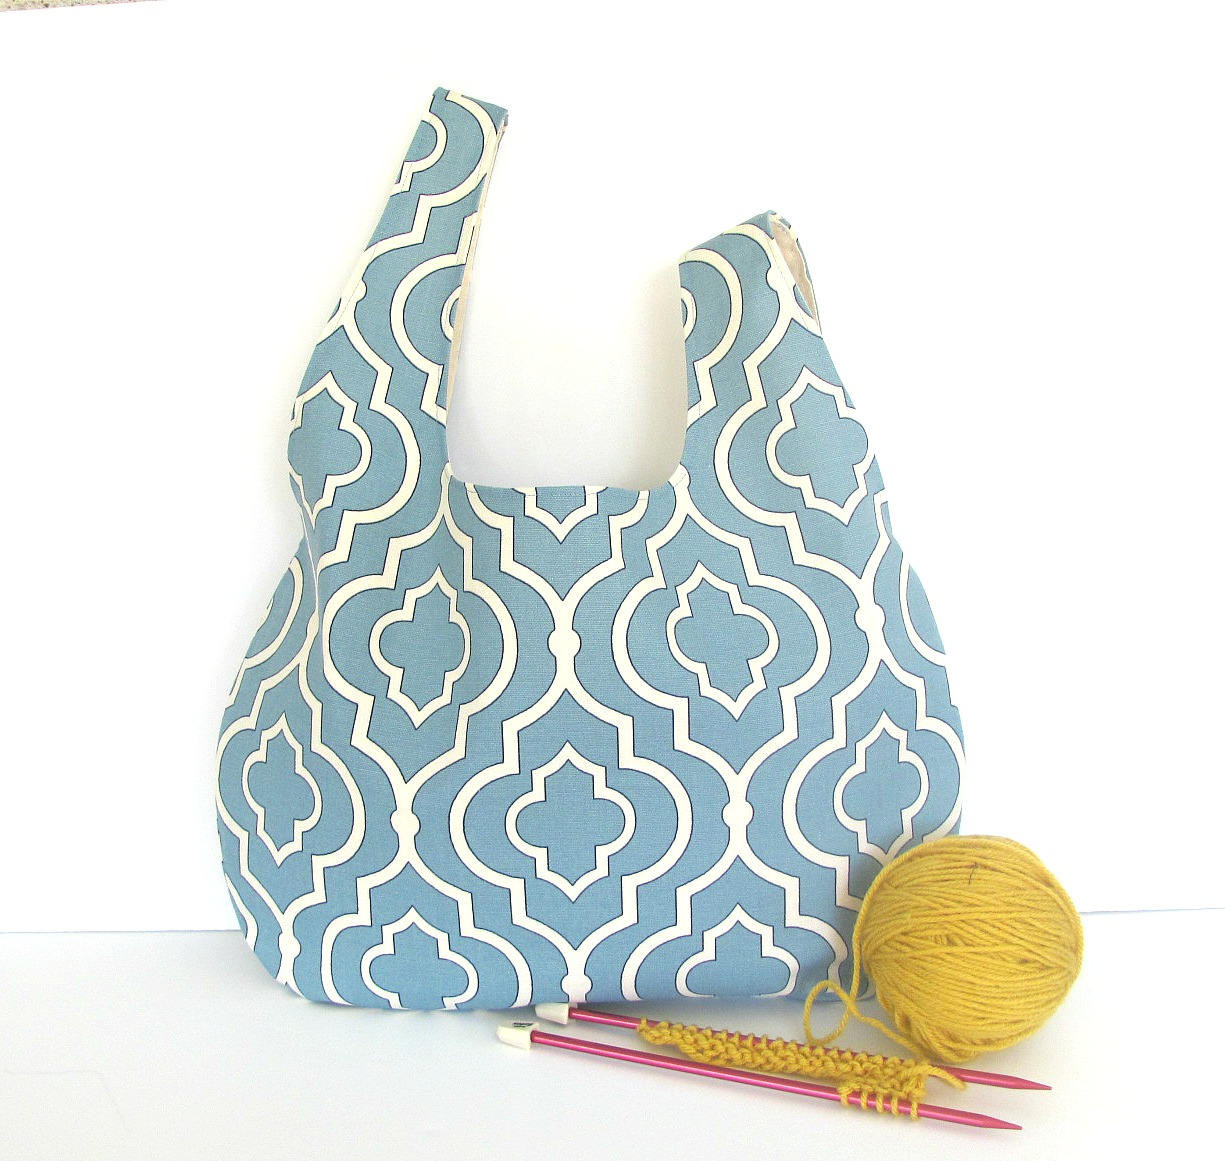 New Knitting tote Bag Knitting Bag Handbag Crochet Knitting Bags and totes Of Marvelous 48 Ideas Knitting Bags and totes